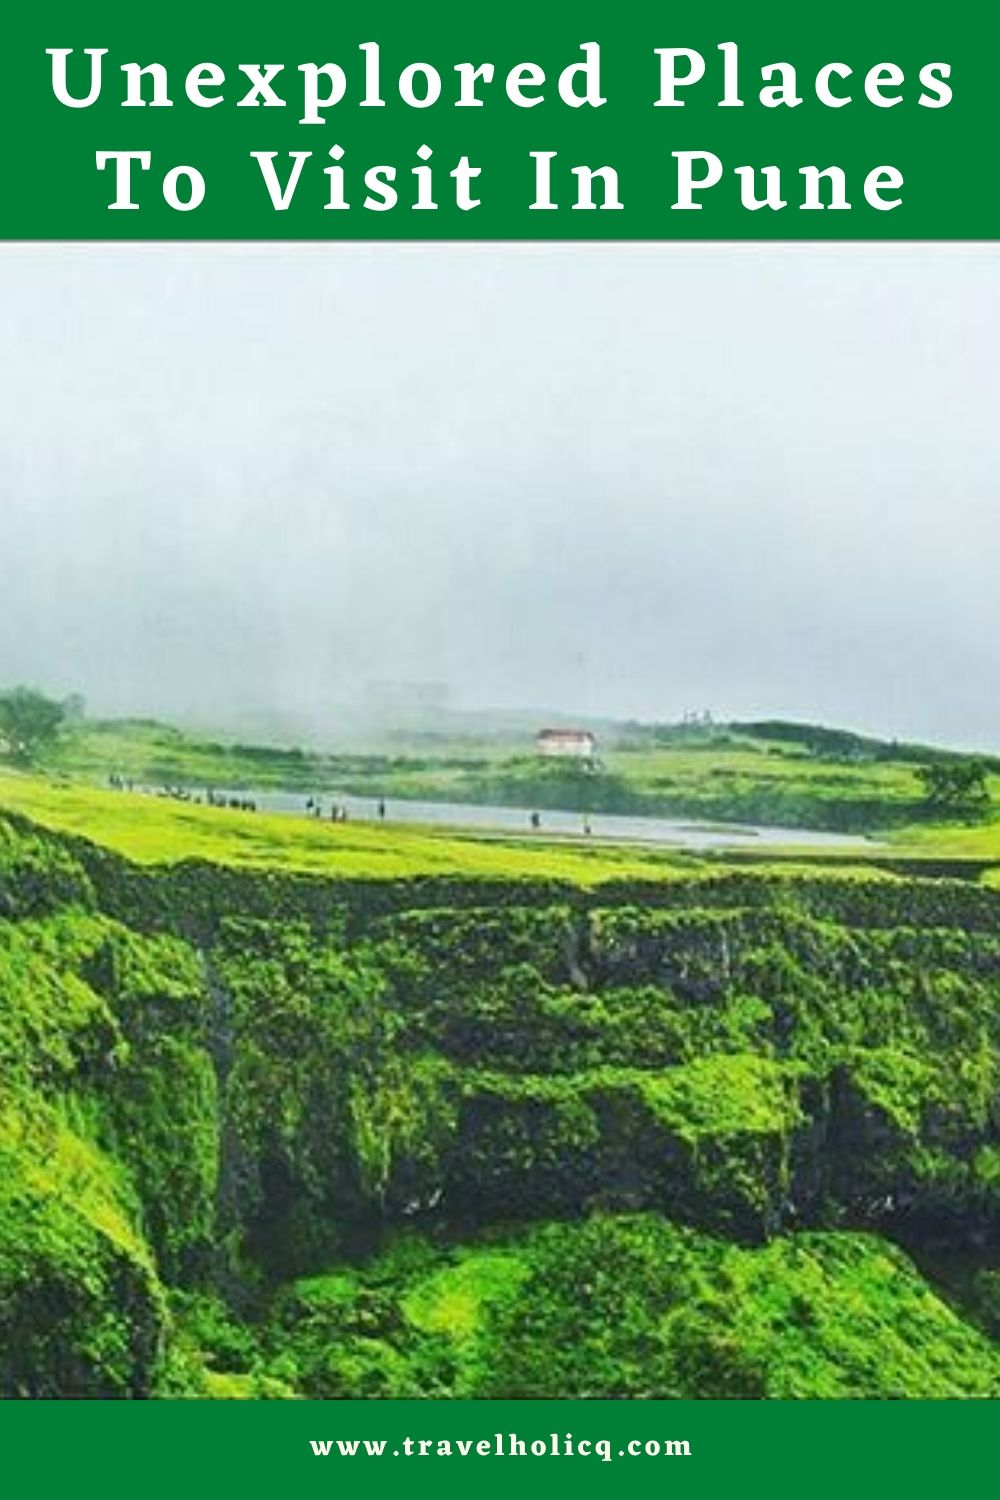 Unexplored Places To Visit In Pune